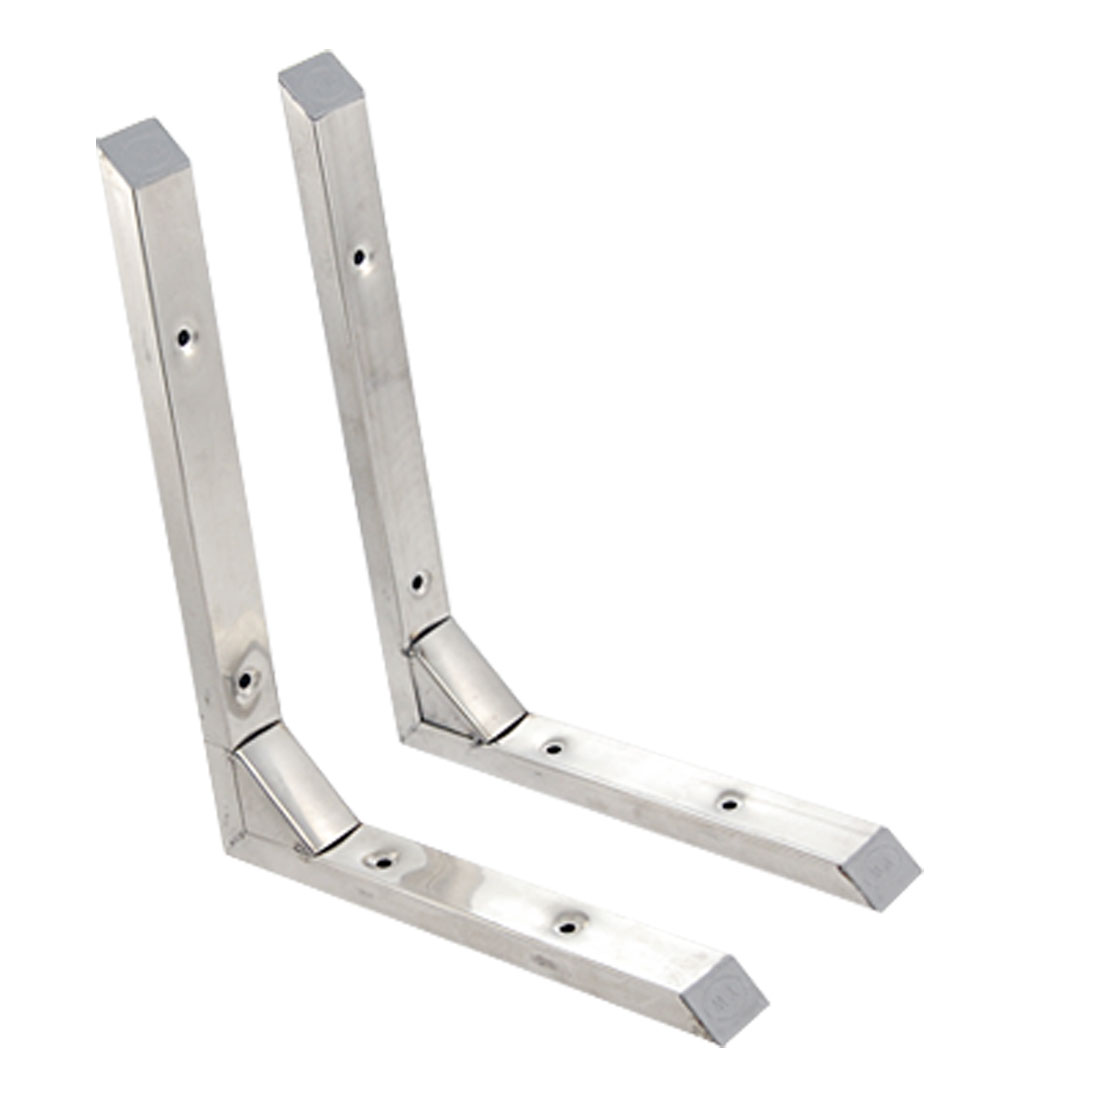 "Stainless Steel 90 Degree 9.5"" Wall Mounting Bracket 2 Pcs"